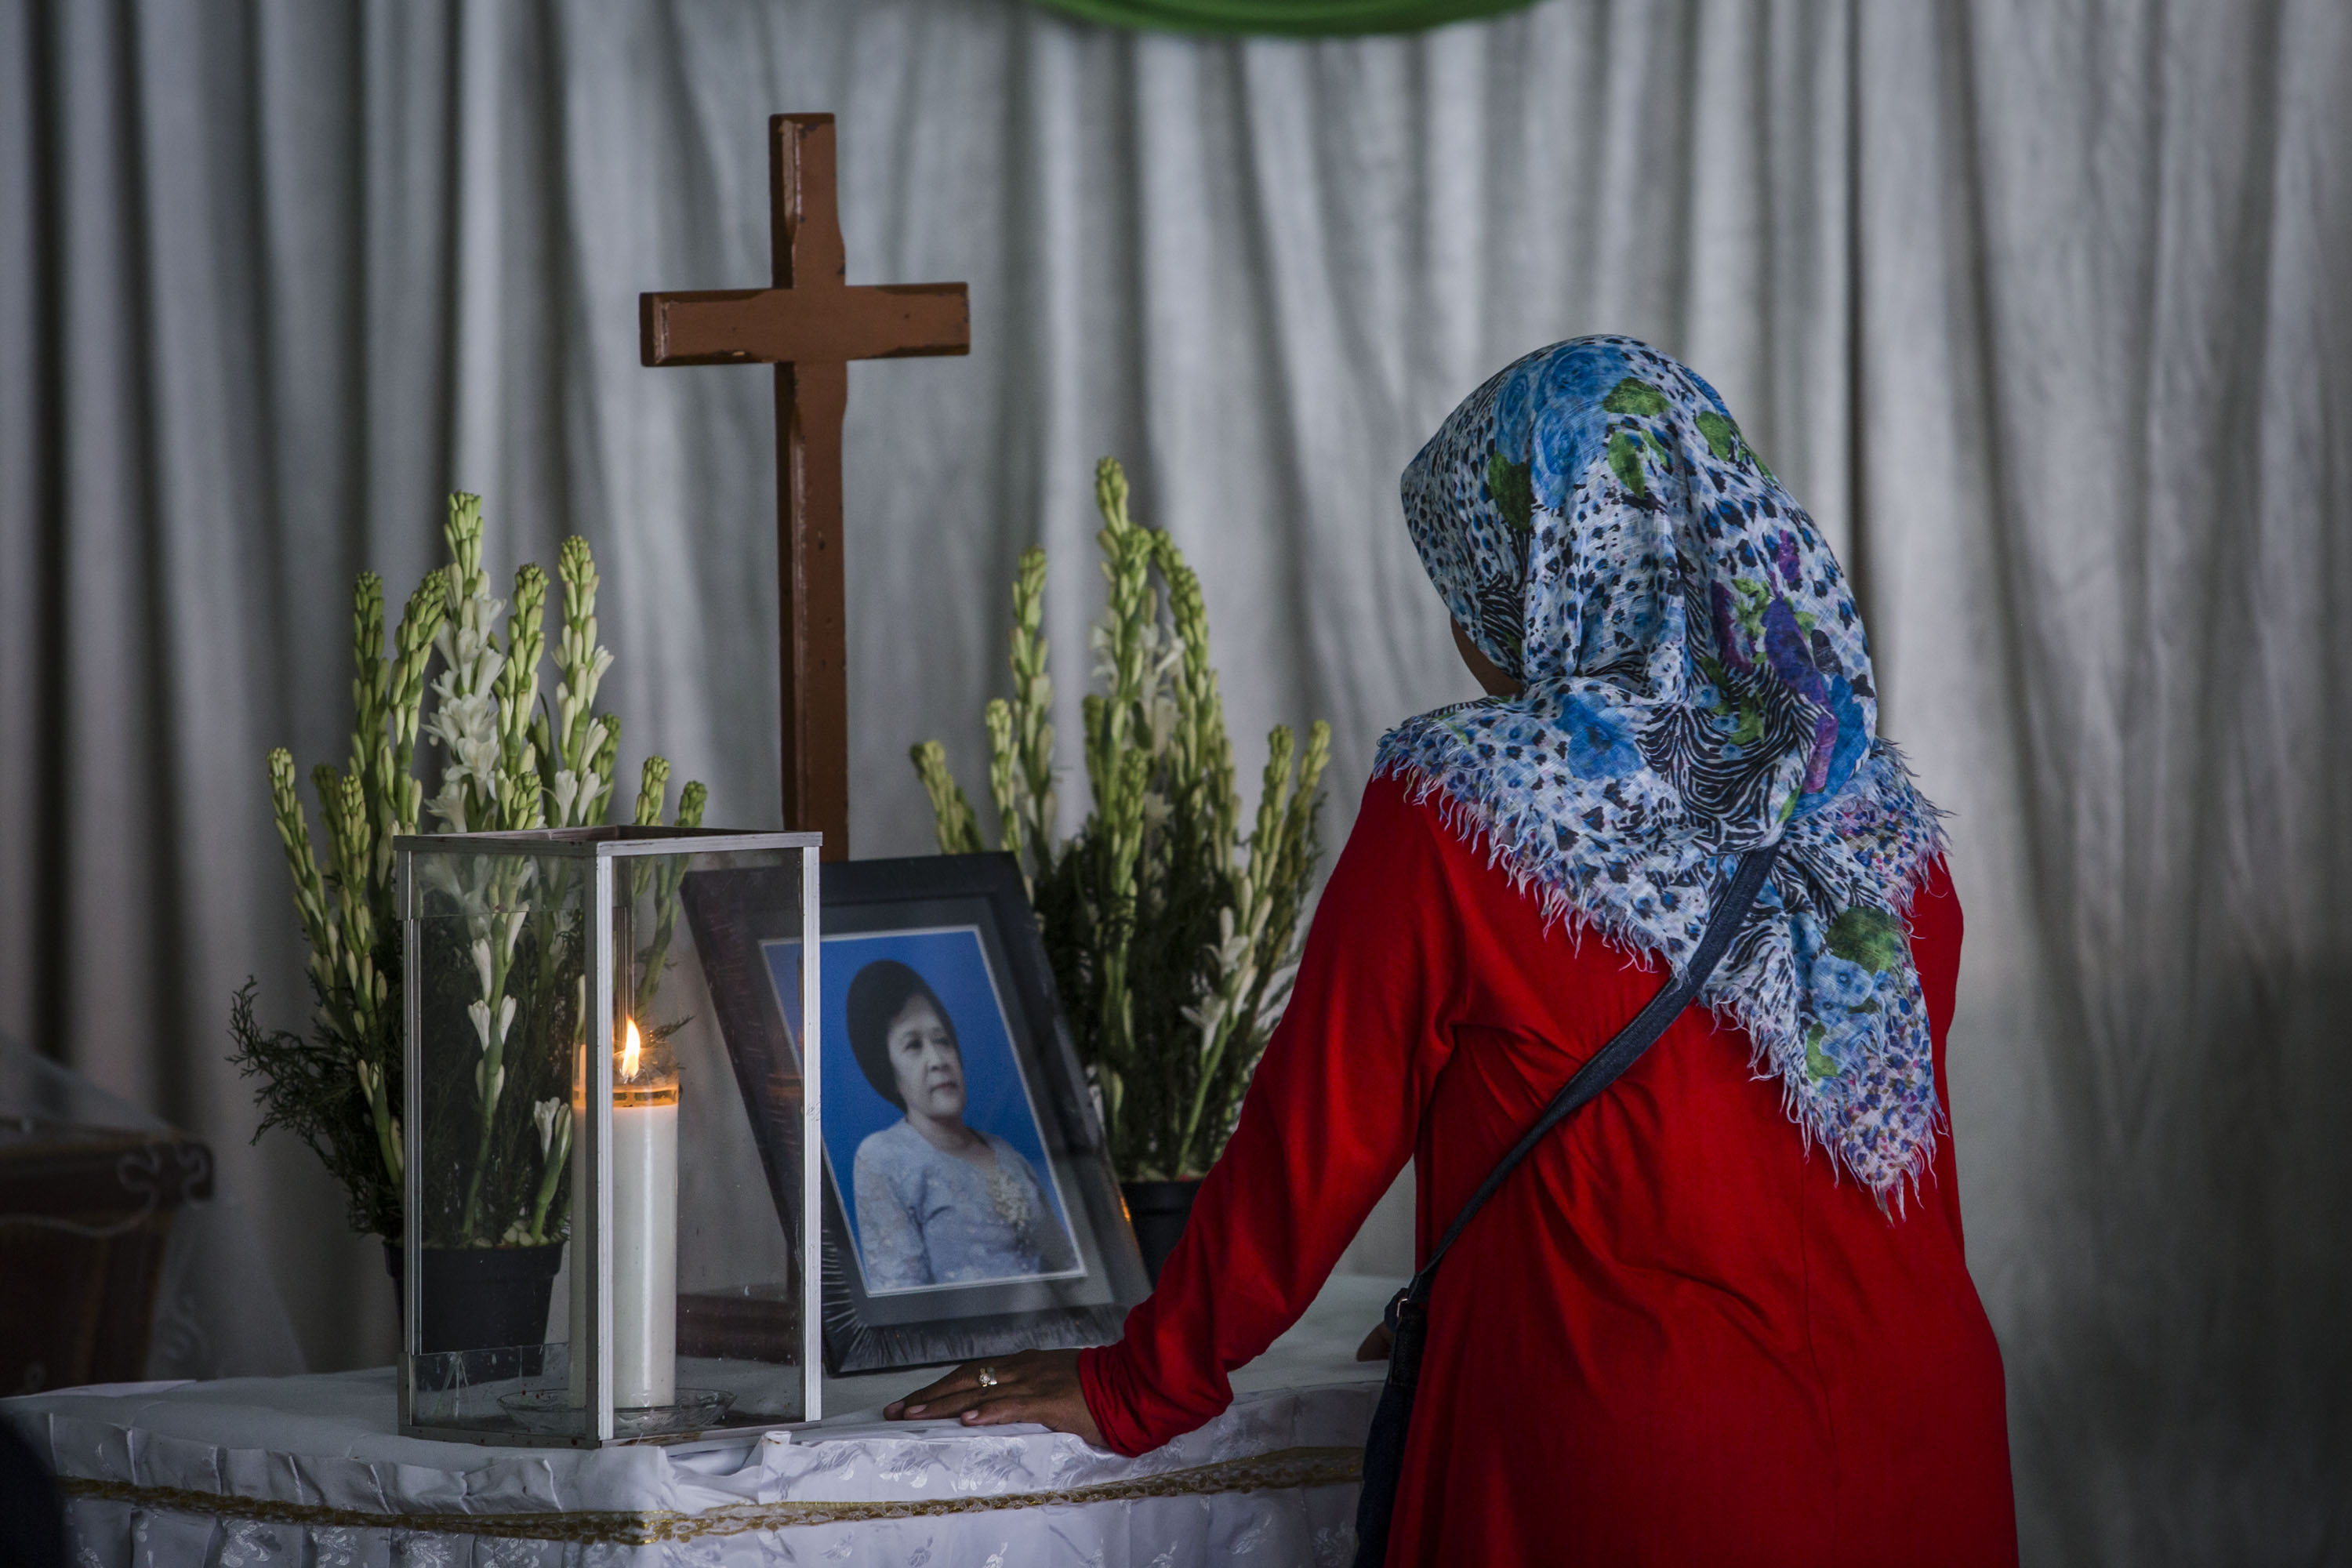 Yuliastuti, grieves in front coffin of Sri Puji, one of the victims killed at Surabaya Centre Pentecostal Church attack, following a blast at the church a day earlier on May 14, 2018 in Surabaya, Indonesia.